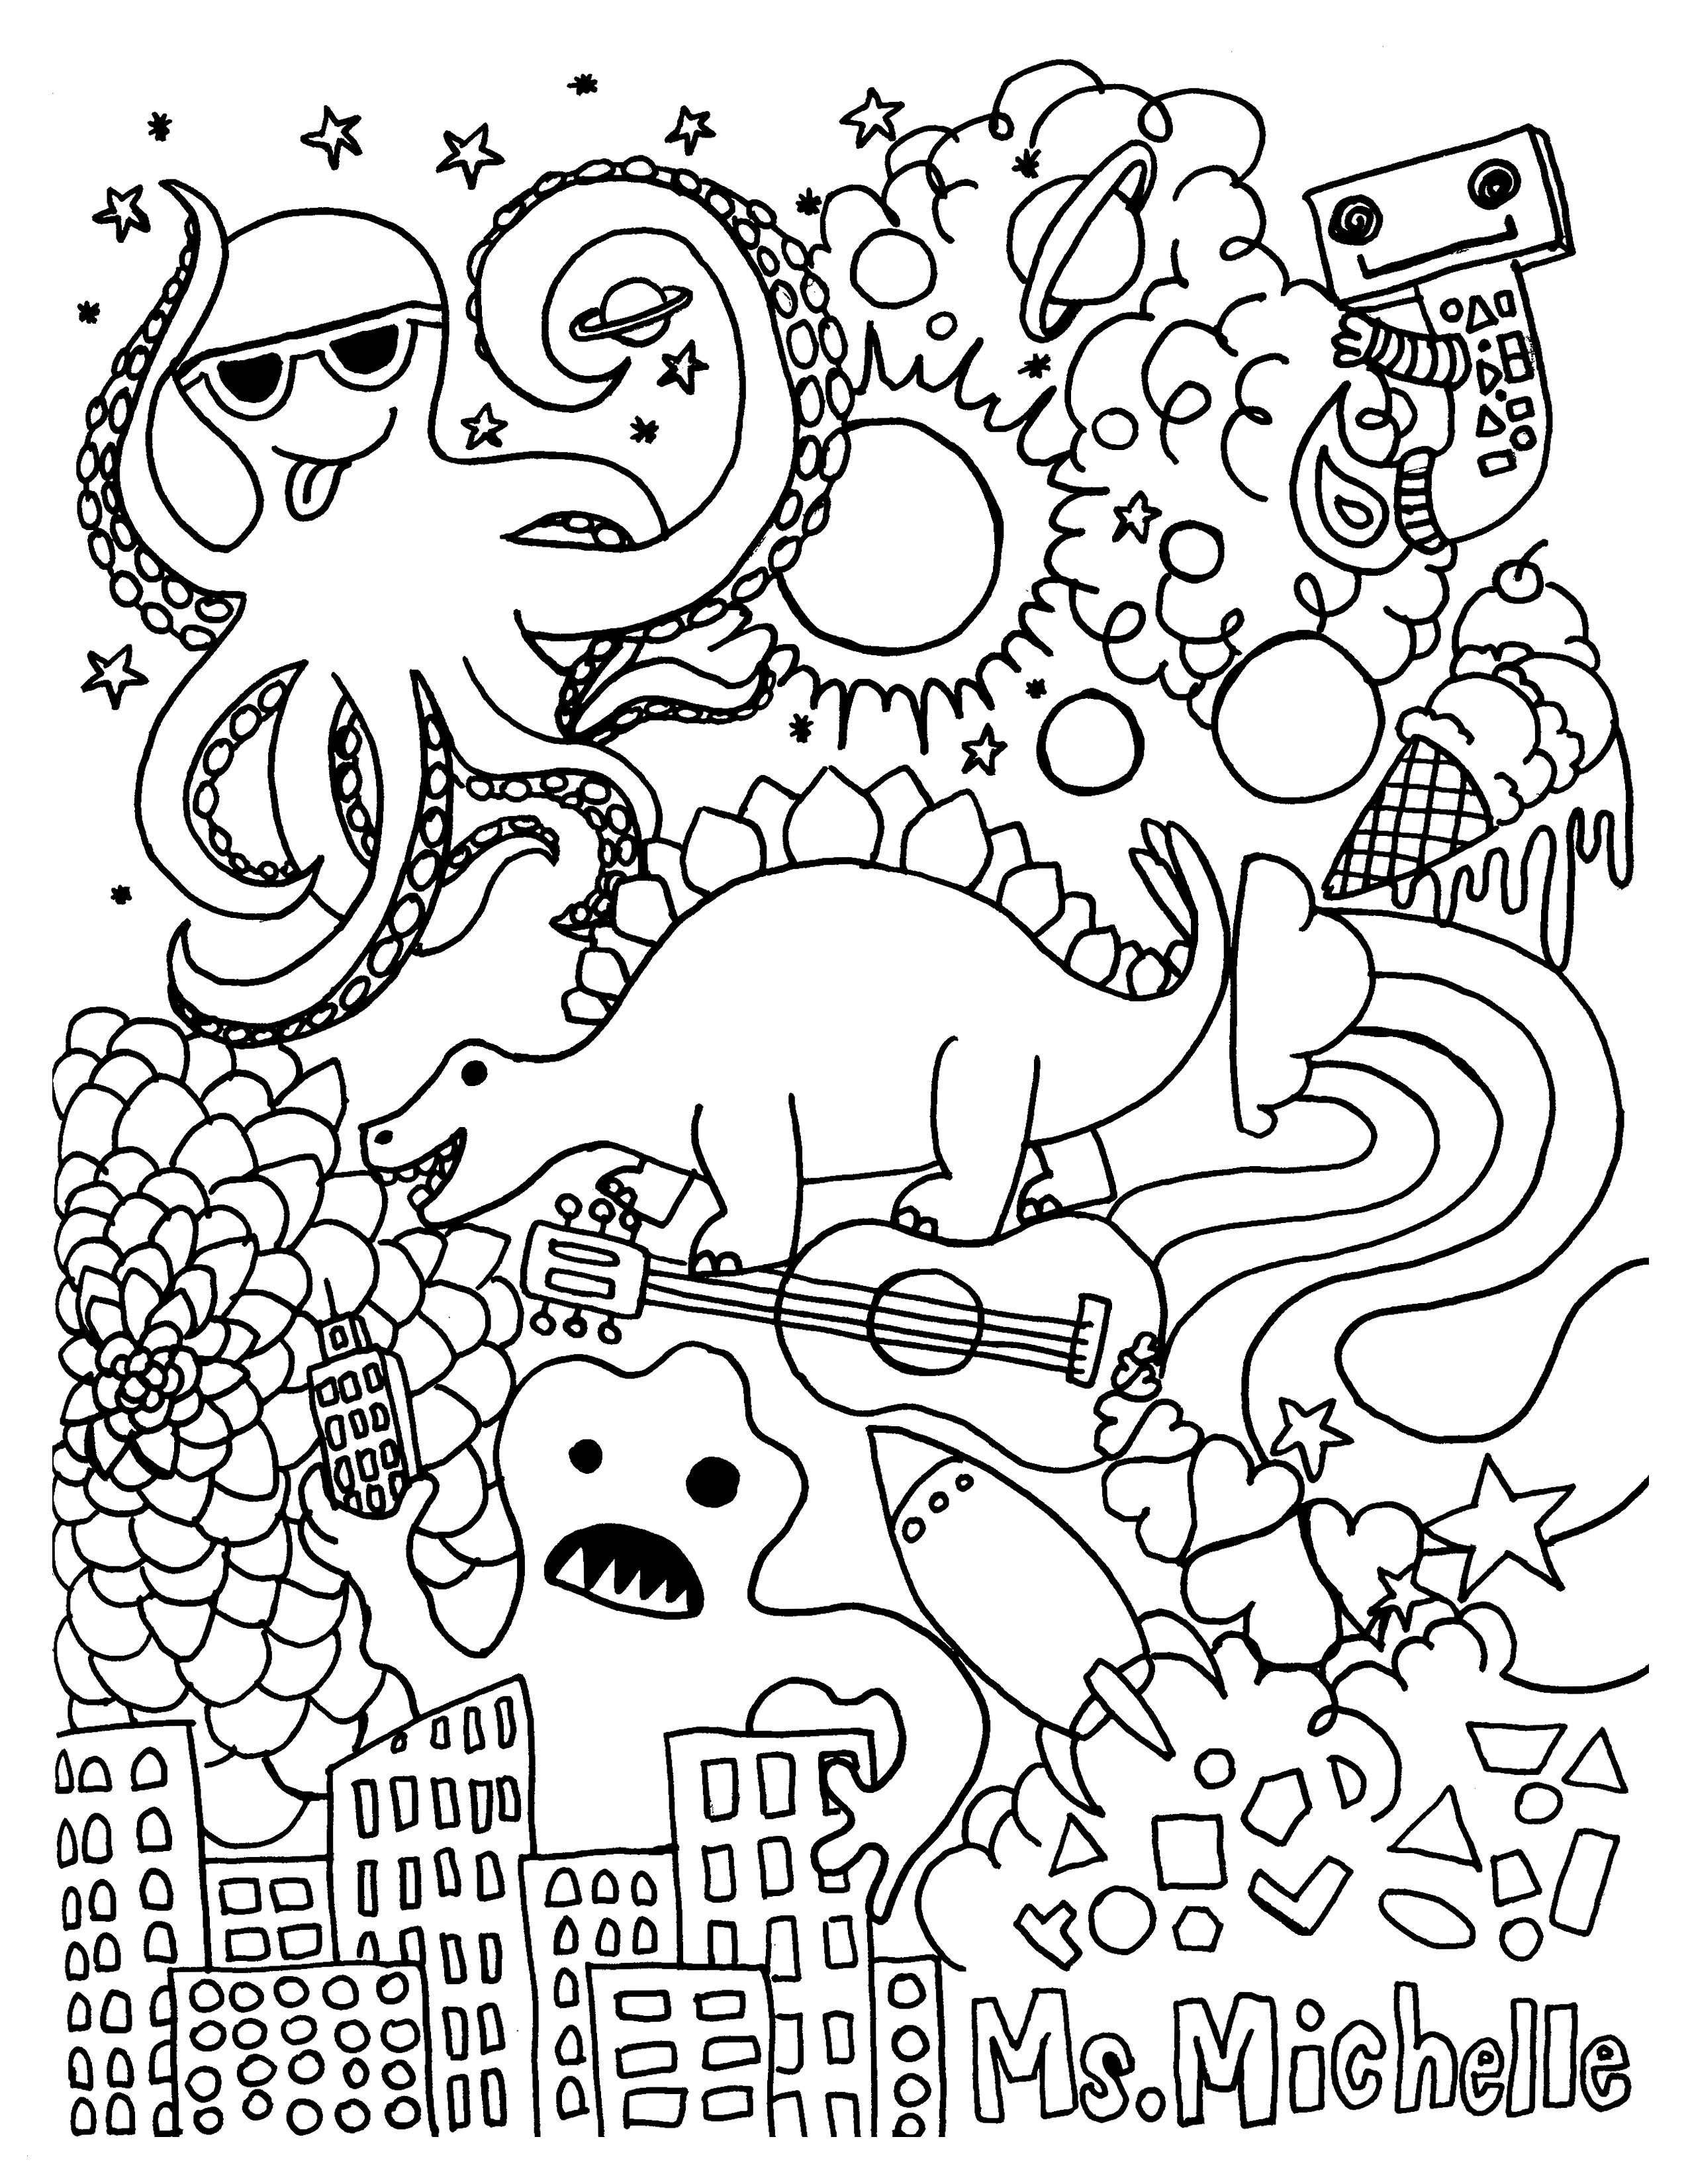 dinosaur and dragon coloring pages pin on animals dragons dinosaur coloring pages dinosaur pages dragon and coloring